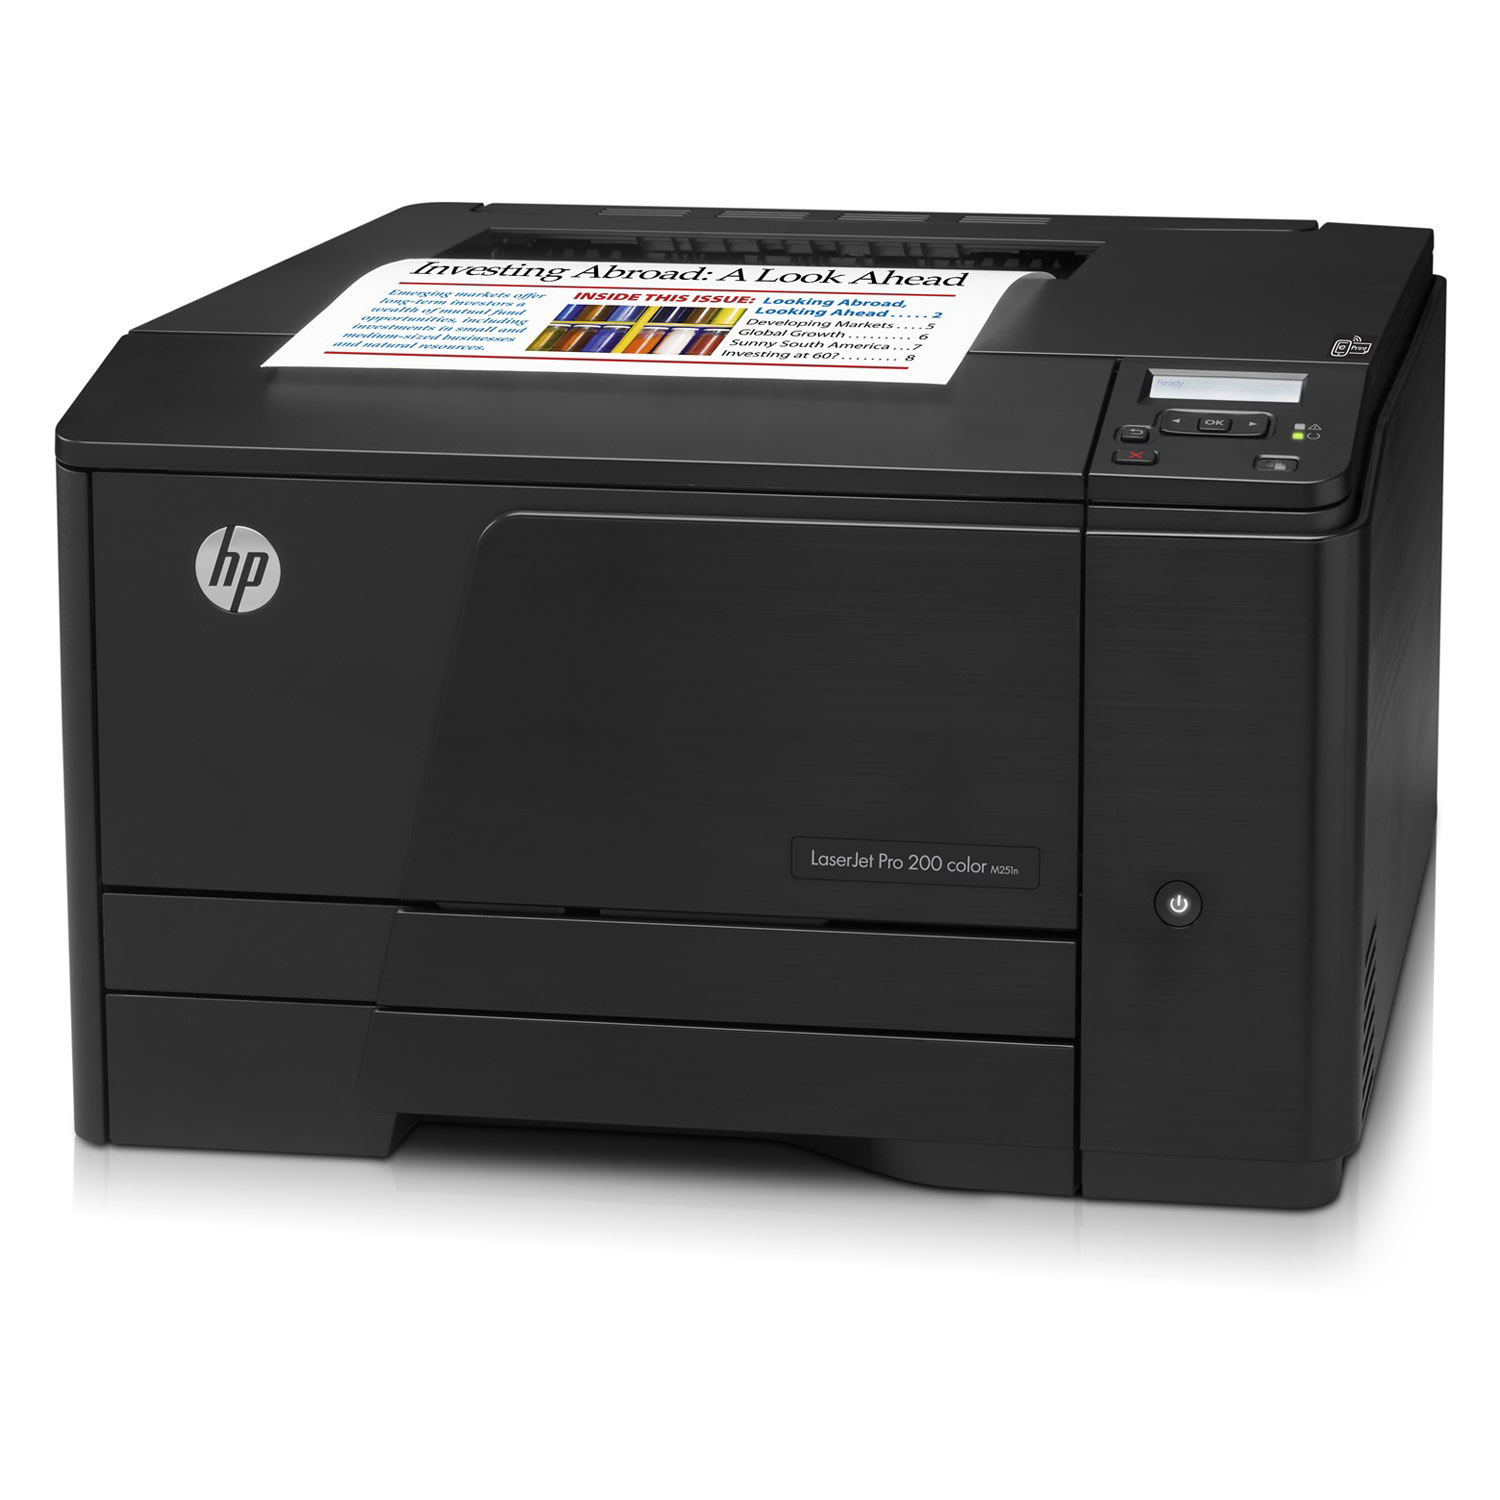 hp laserjet pro 200 color m251n cf146a imprimante laser hp sur. Black Bedroom Furniture Sets. Home Design Ideas